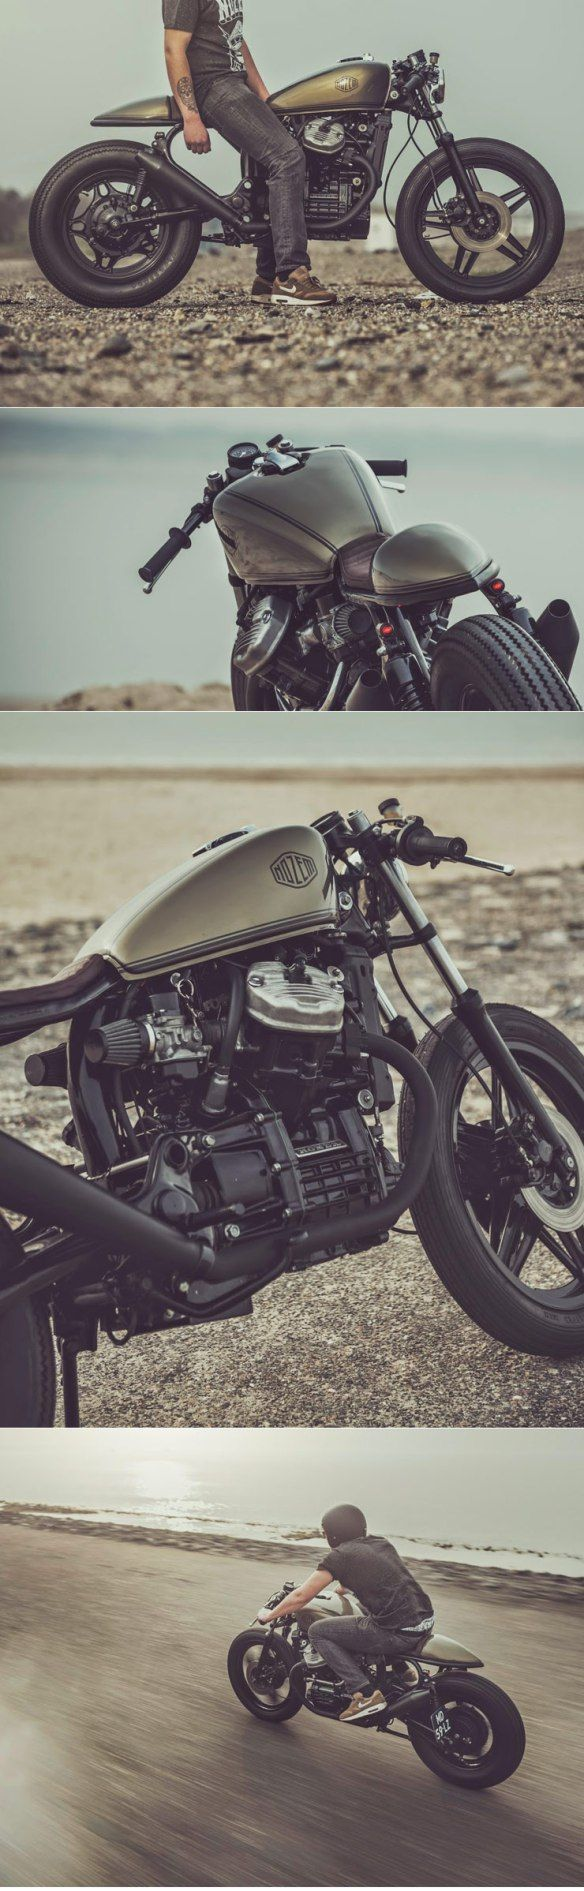 11 Best Motorcycles Images On Pinterest Vintage 1976 1000 Cc Honda Goldwing Wiring Diagram 10 Cafe Racer By Nozem Amsterdam Via Moto Mucci